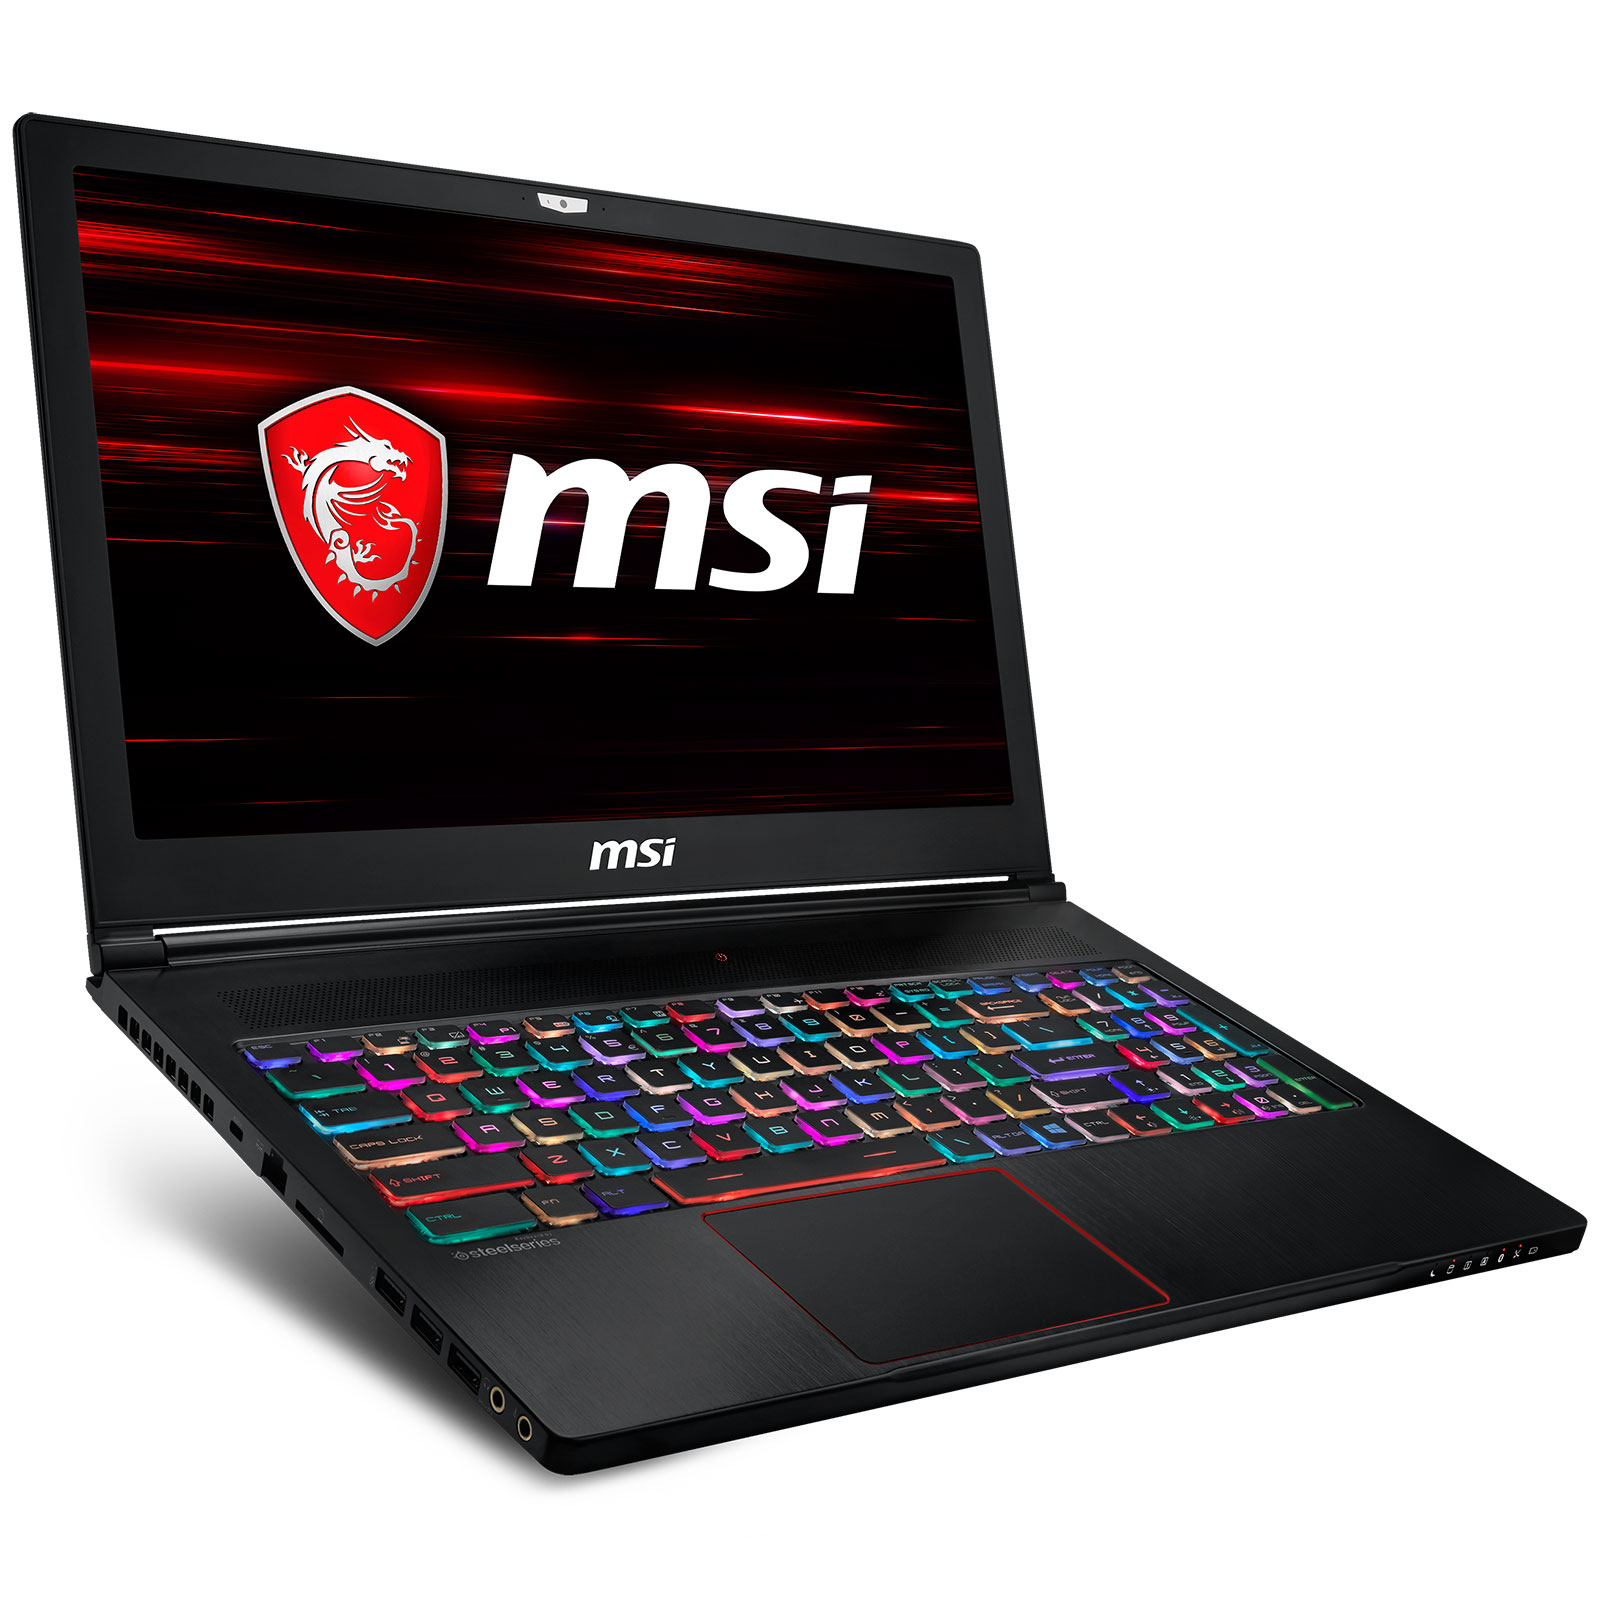 "PC portable MSI GS63 8RE-017FR Stealth Intel Core i7-8750H 16 Go SSD 256 Go + HDD 2 To 15.6"" LED Full HD 120 Hz NVIDIA GeForce GTX 1060 6 Go Wi-Fi AC/Bluetooth Webcam Windows 10 Famille 64 bits (garantie constructeur 2 ans)"